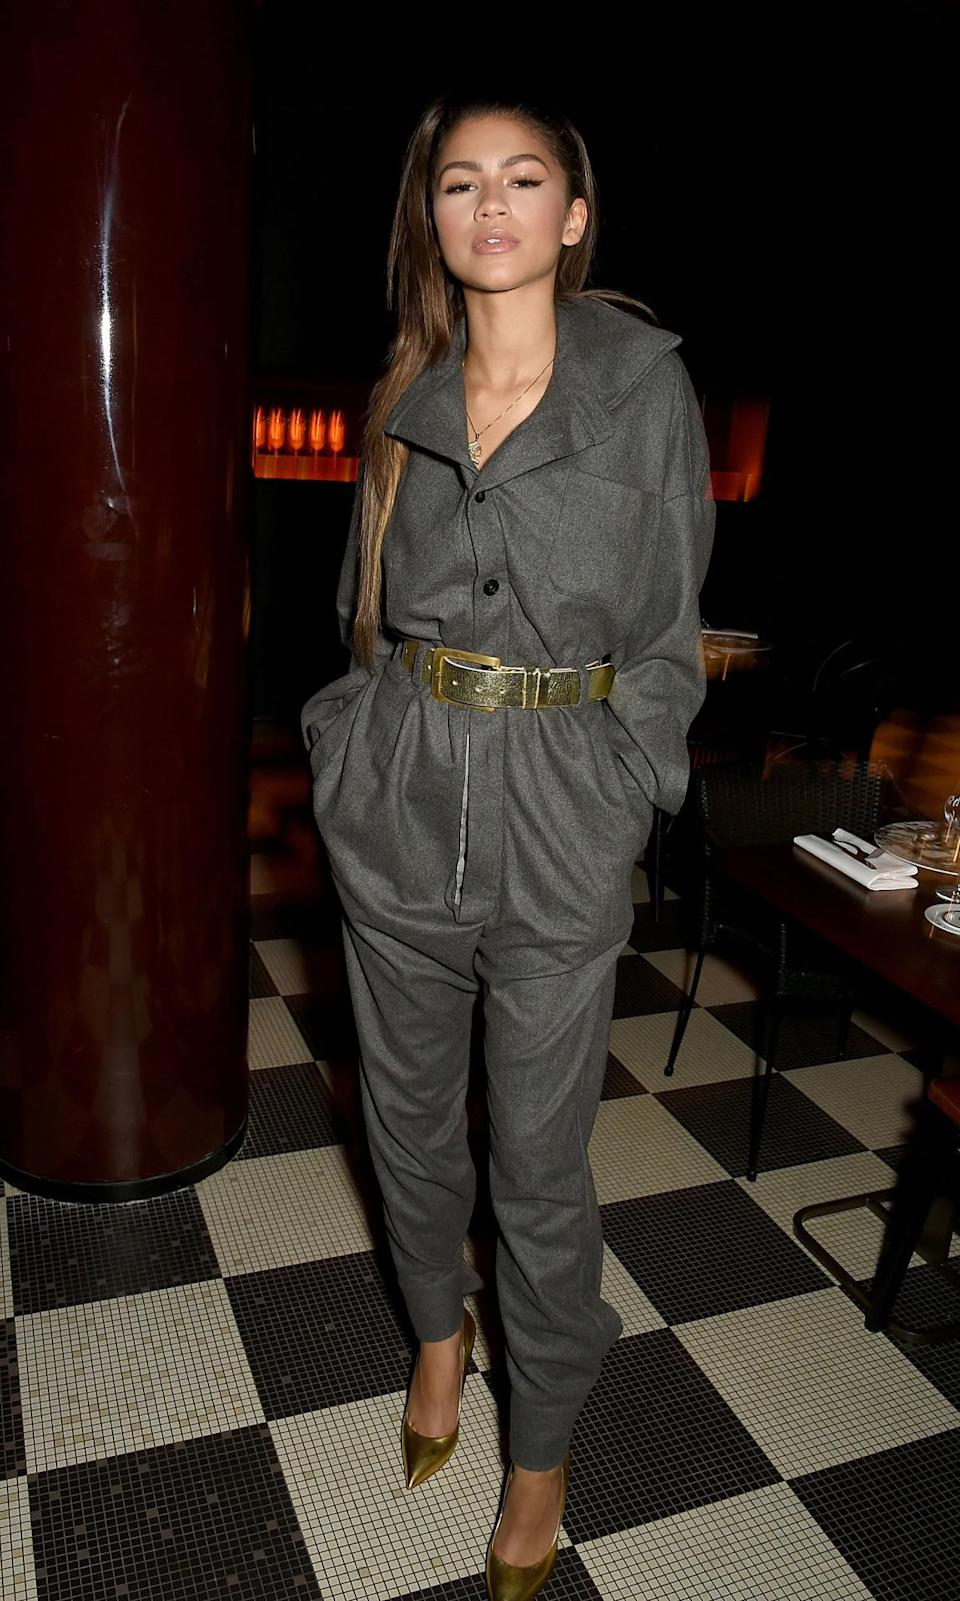 <p>Attending the <i>Hunger Magazine</i> & Vivienne Westwood Paris Fashion Week Event, Zendaya celebrated at Les Bains in a jumpsuit made by the outspoken British designer. She paired some bright gold stilettos and a matching belt with the gray piece for some pop. <br></p><p><i>Photo: Getty Images</i><br></p>